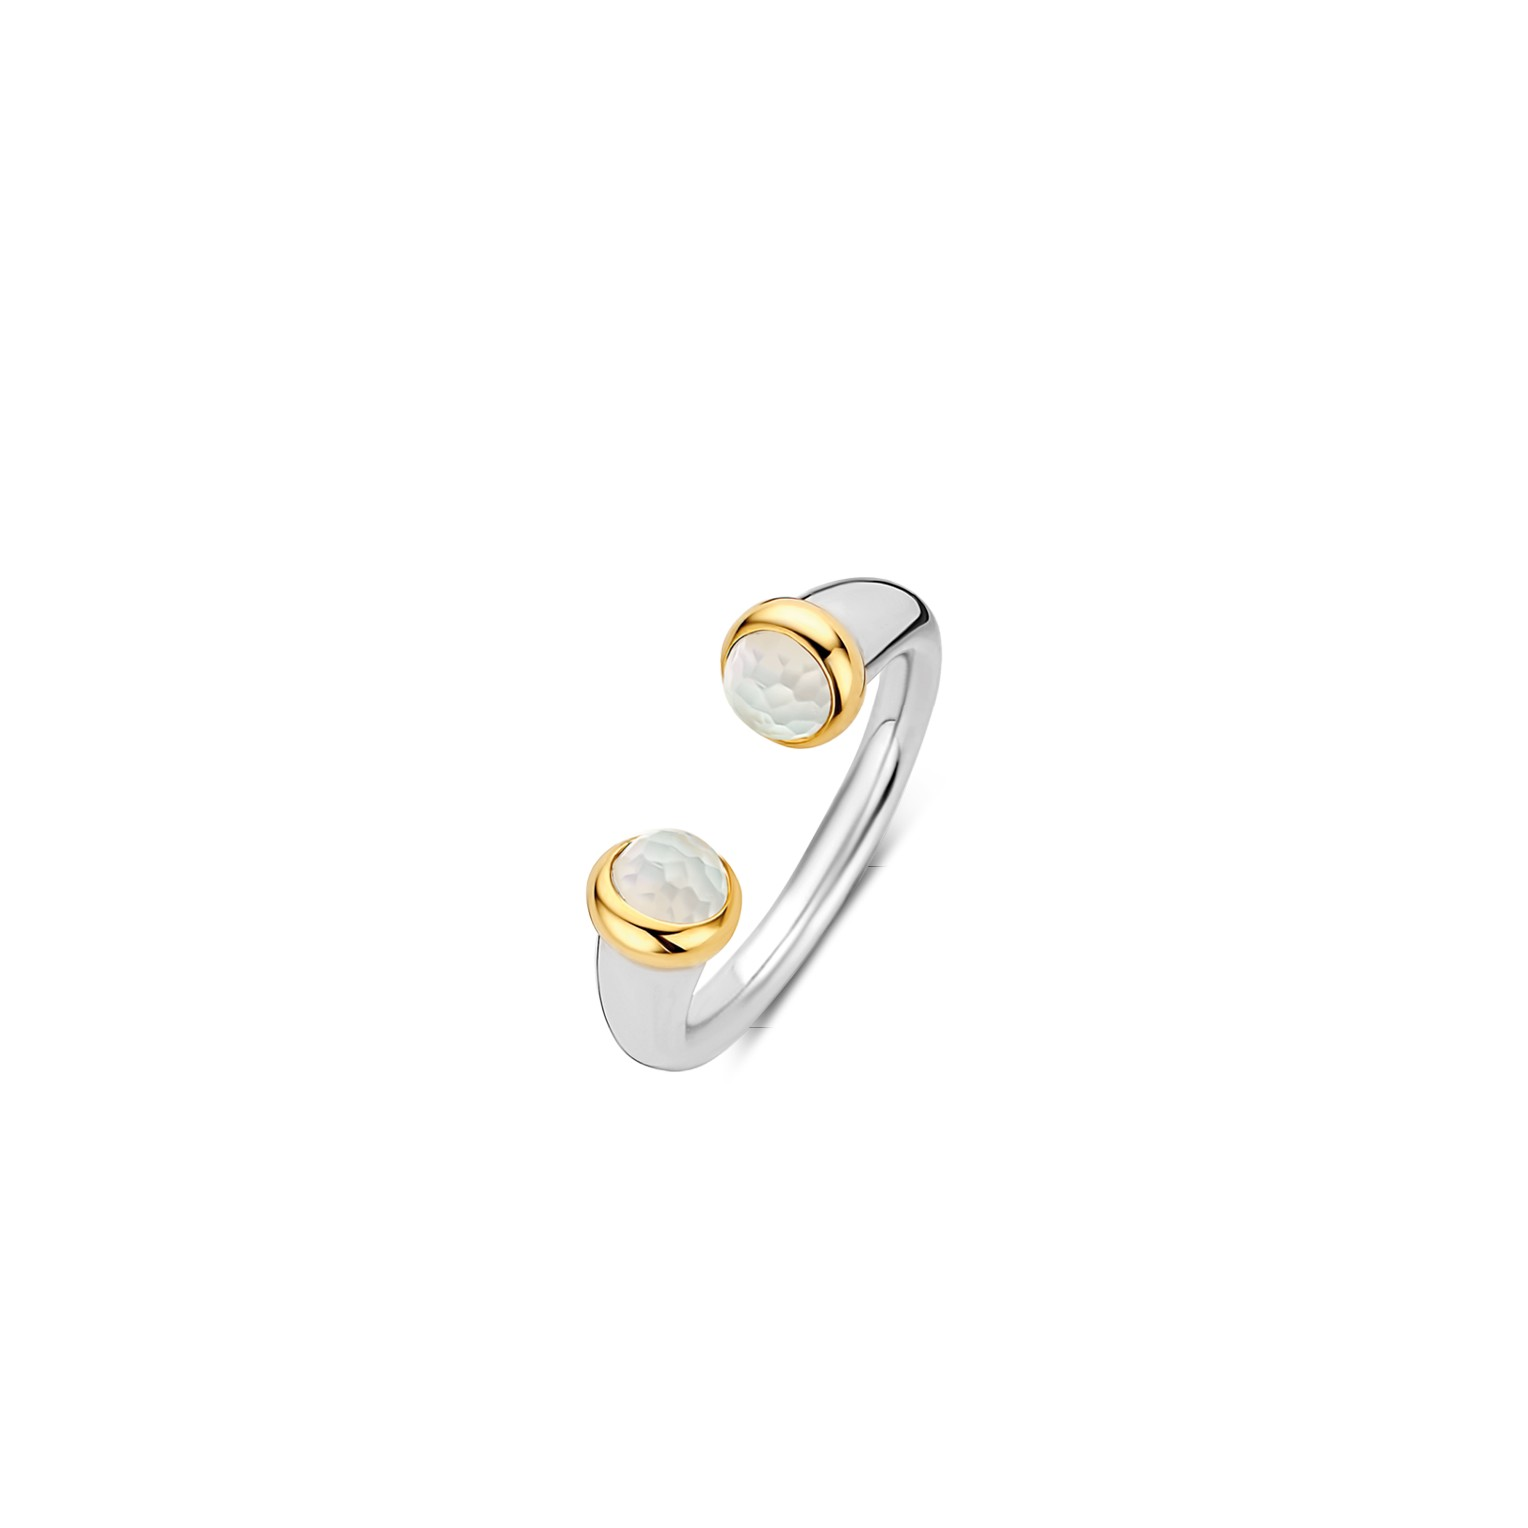 TI SENTO Milano Ring 12177MW Zilver gold plated Maat 62